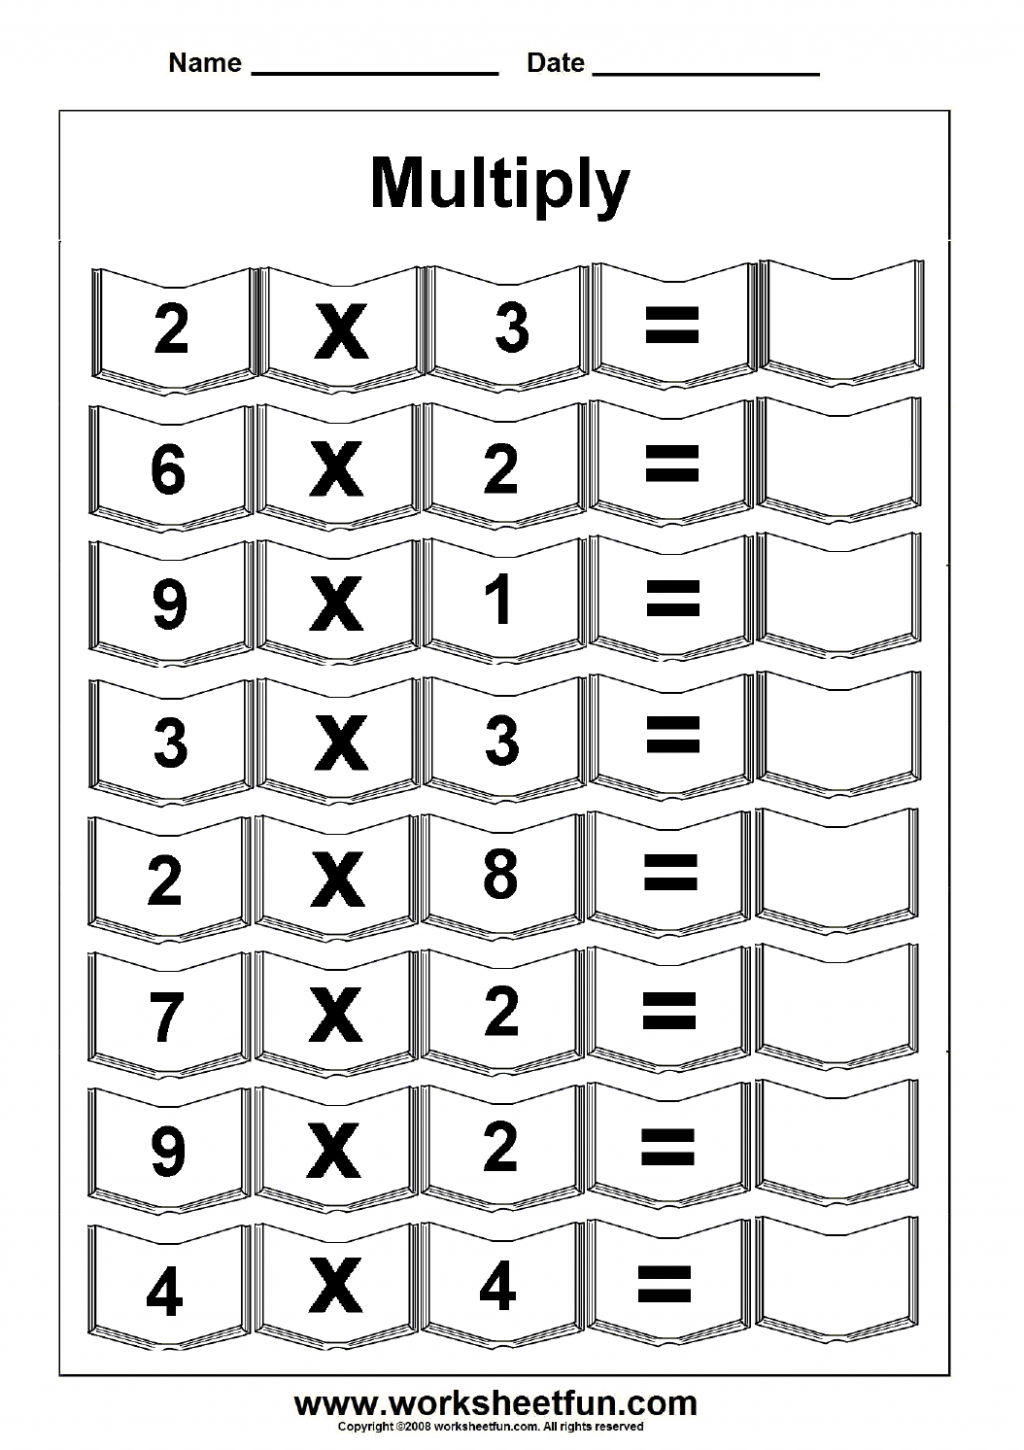 Multiplication Worksheets Easy